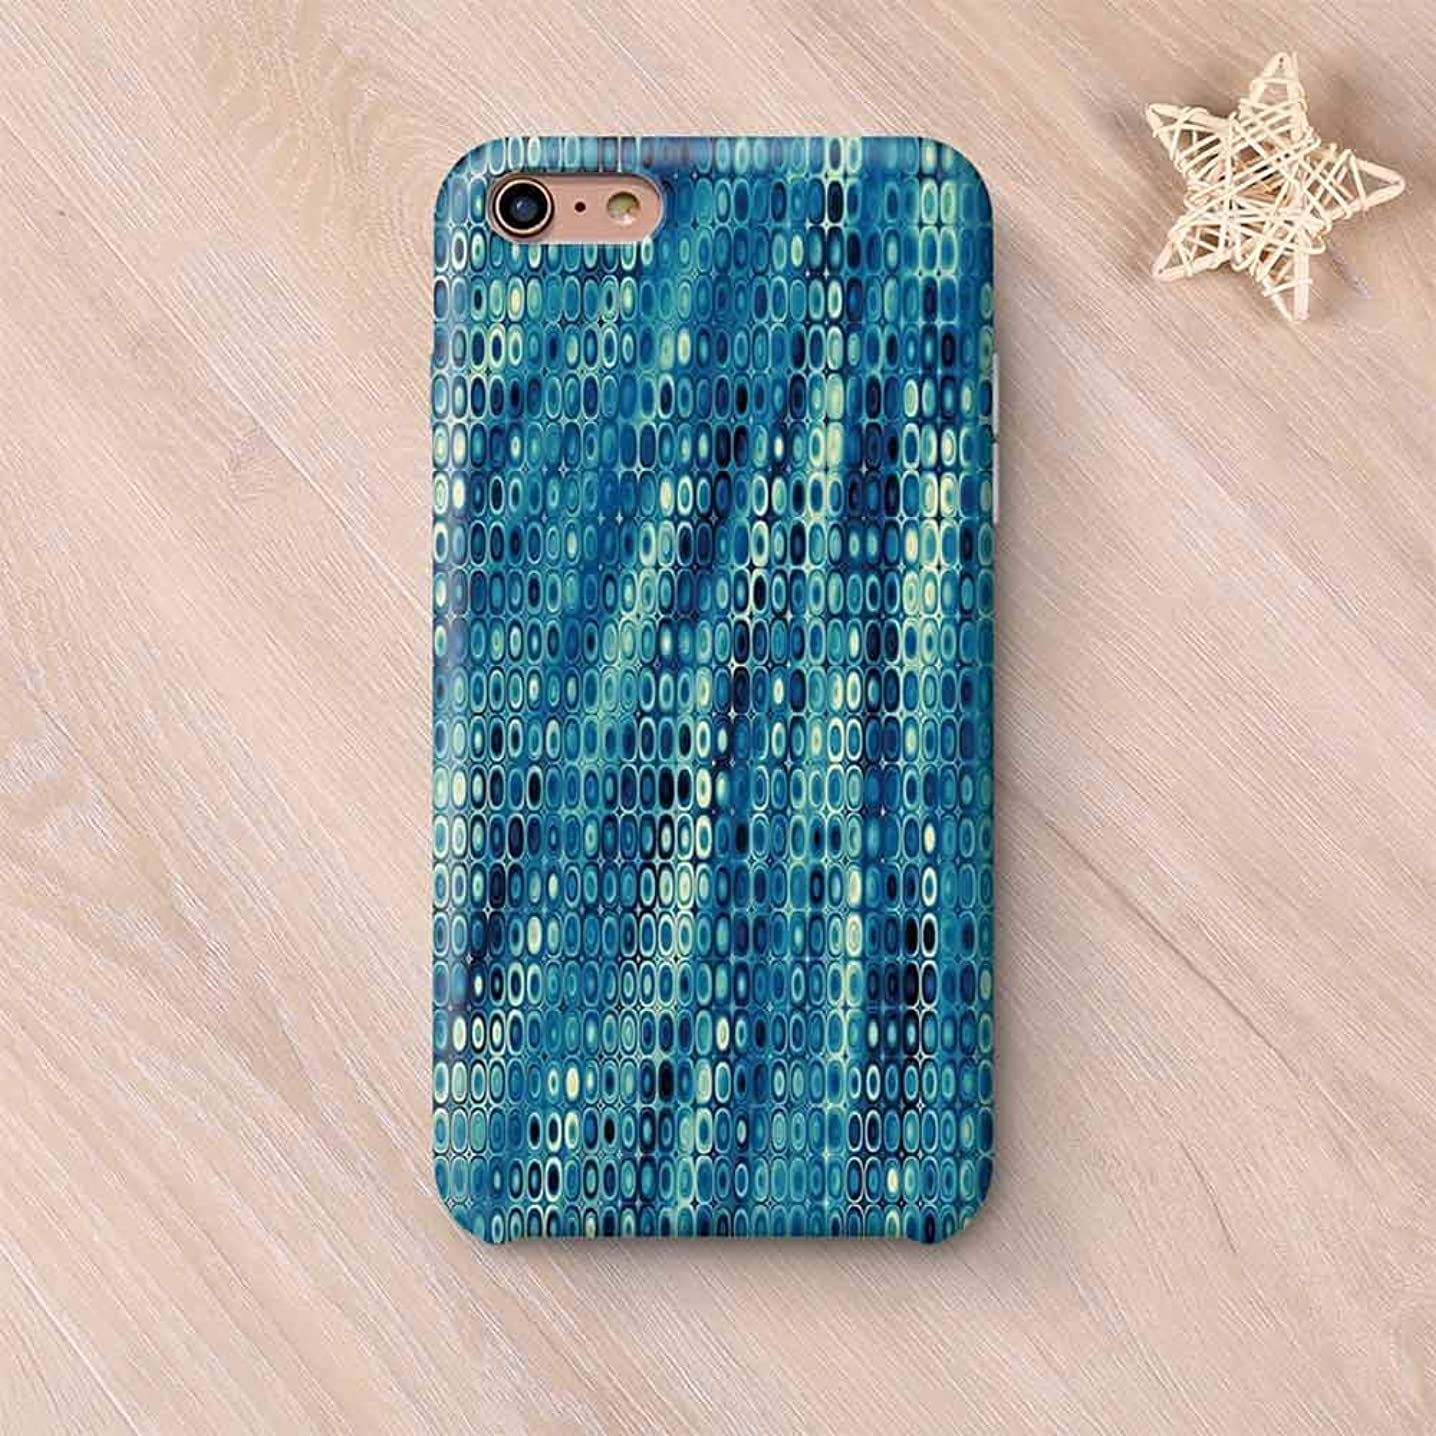 Fractal Printing Compatible with iPhone Case,Vintage Mosaic Style Little Geometric Circles on Flat Background with Artwork Compatible with iPhone 6 Plus / 6s Plus,iPhone 6 Plus / 6s Plus